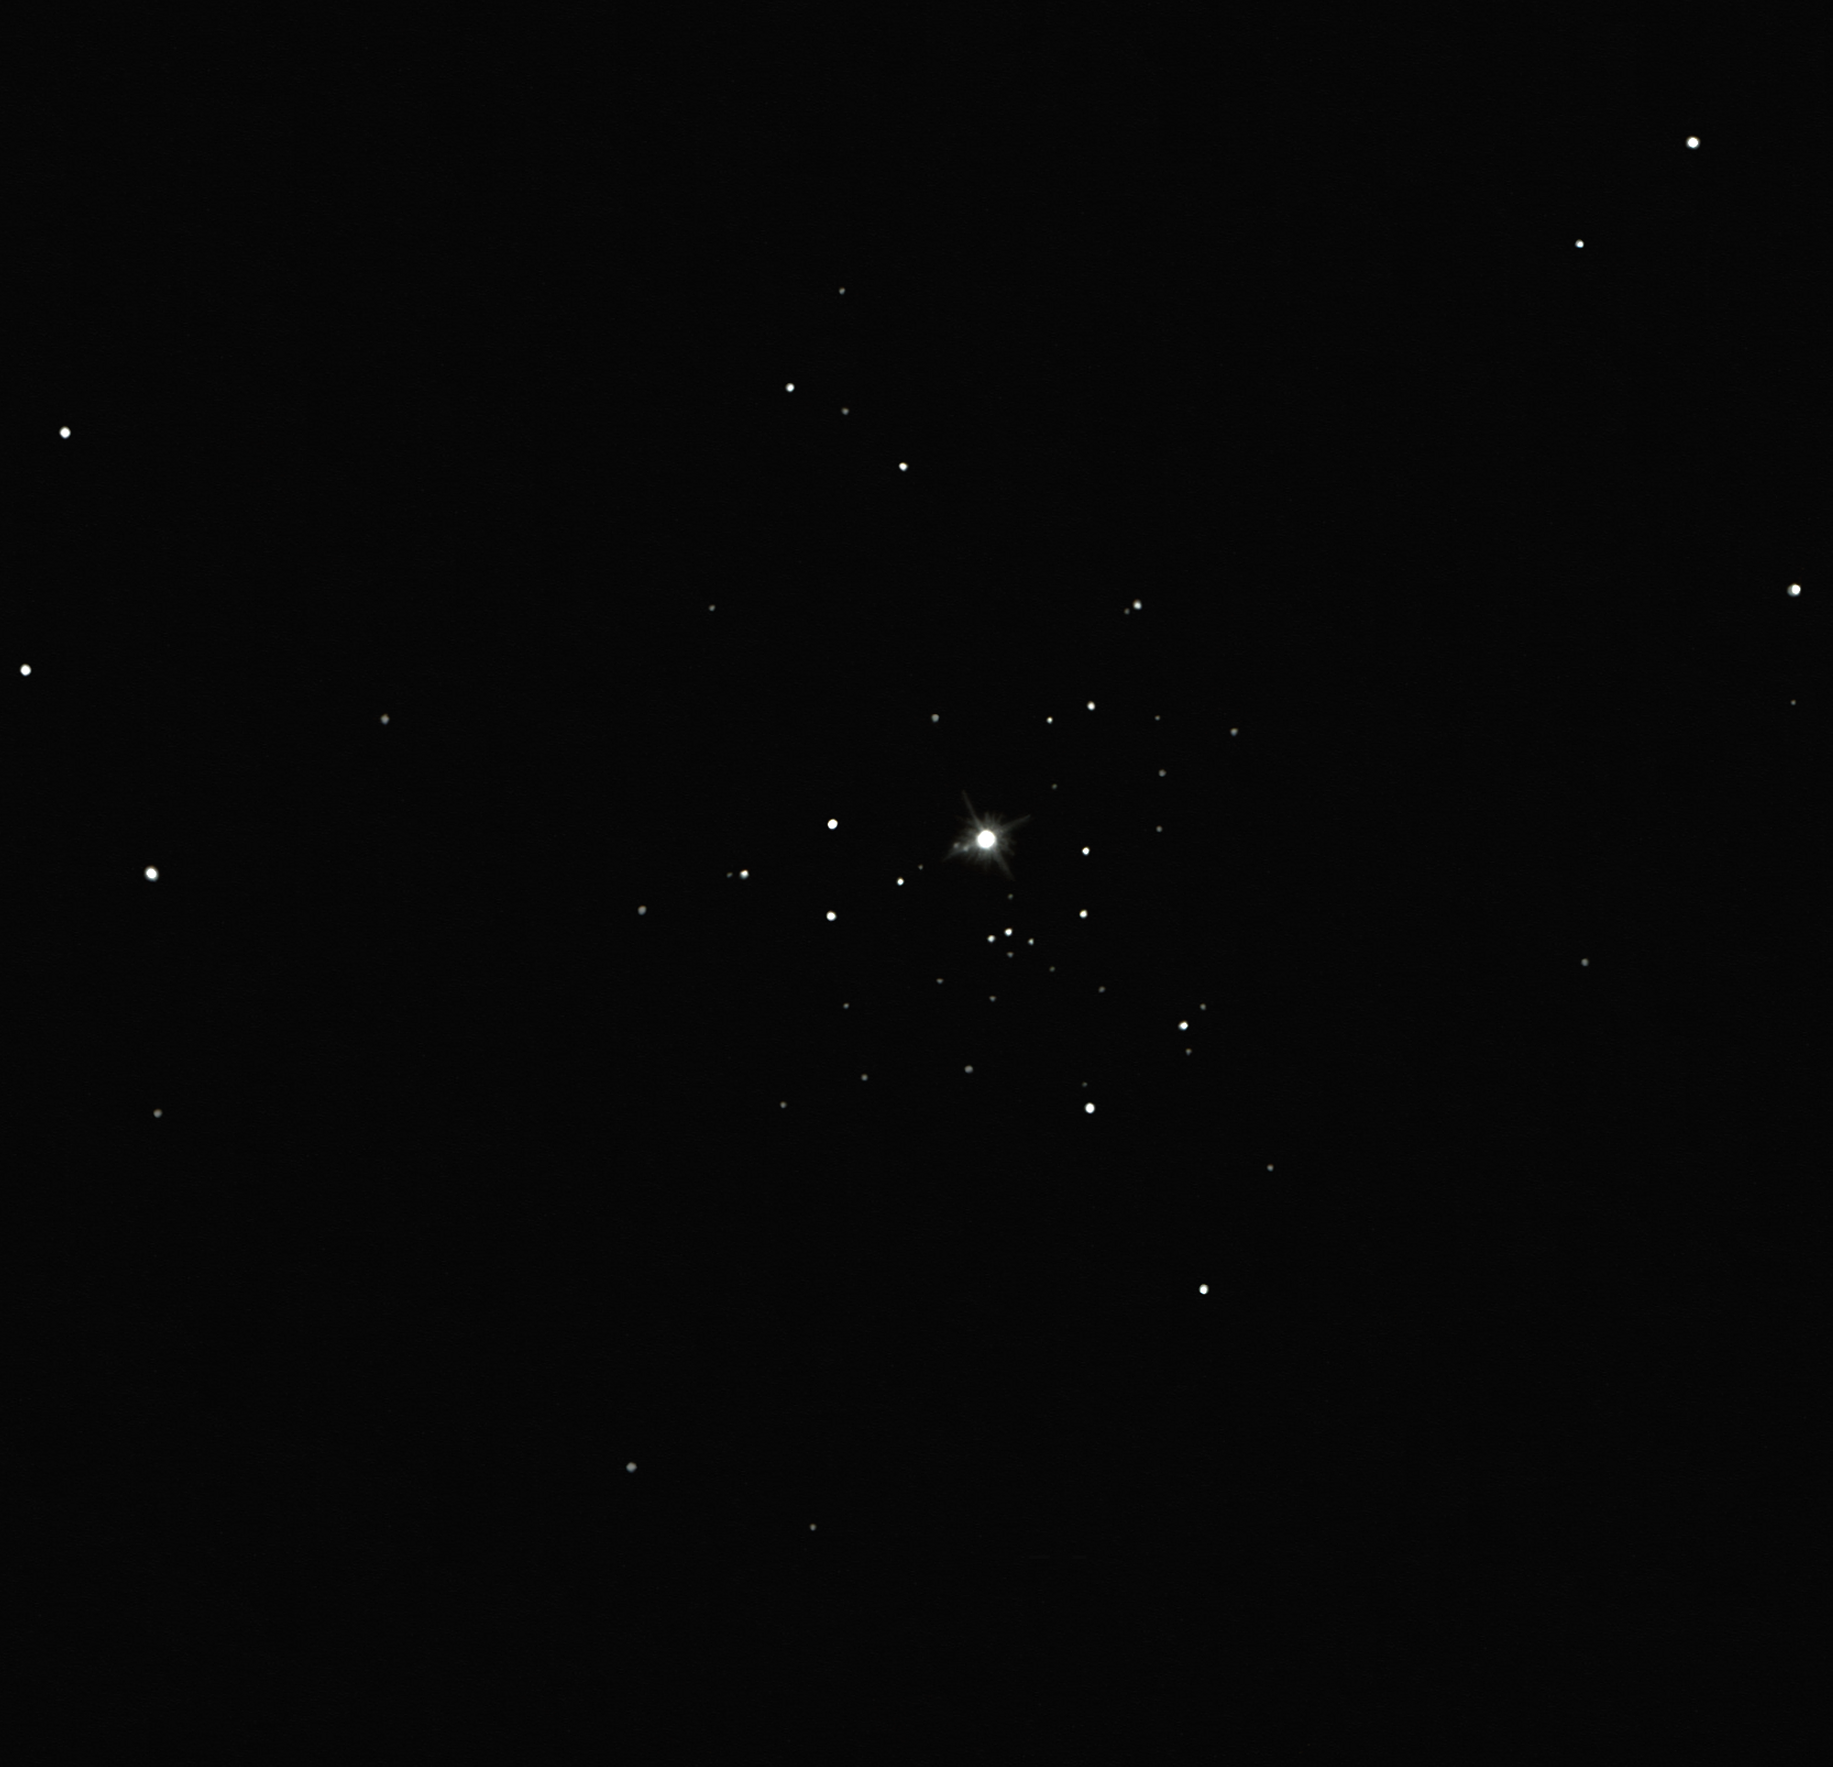 ngc 2362 open cluster